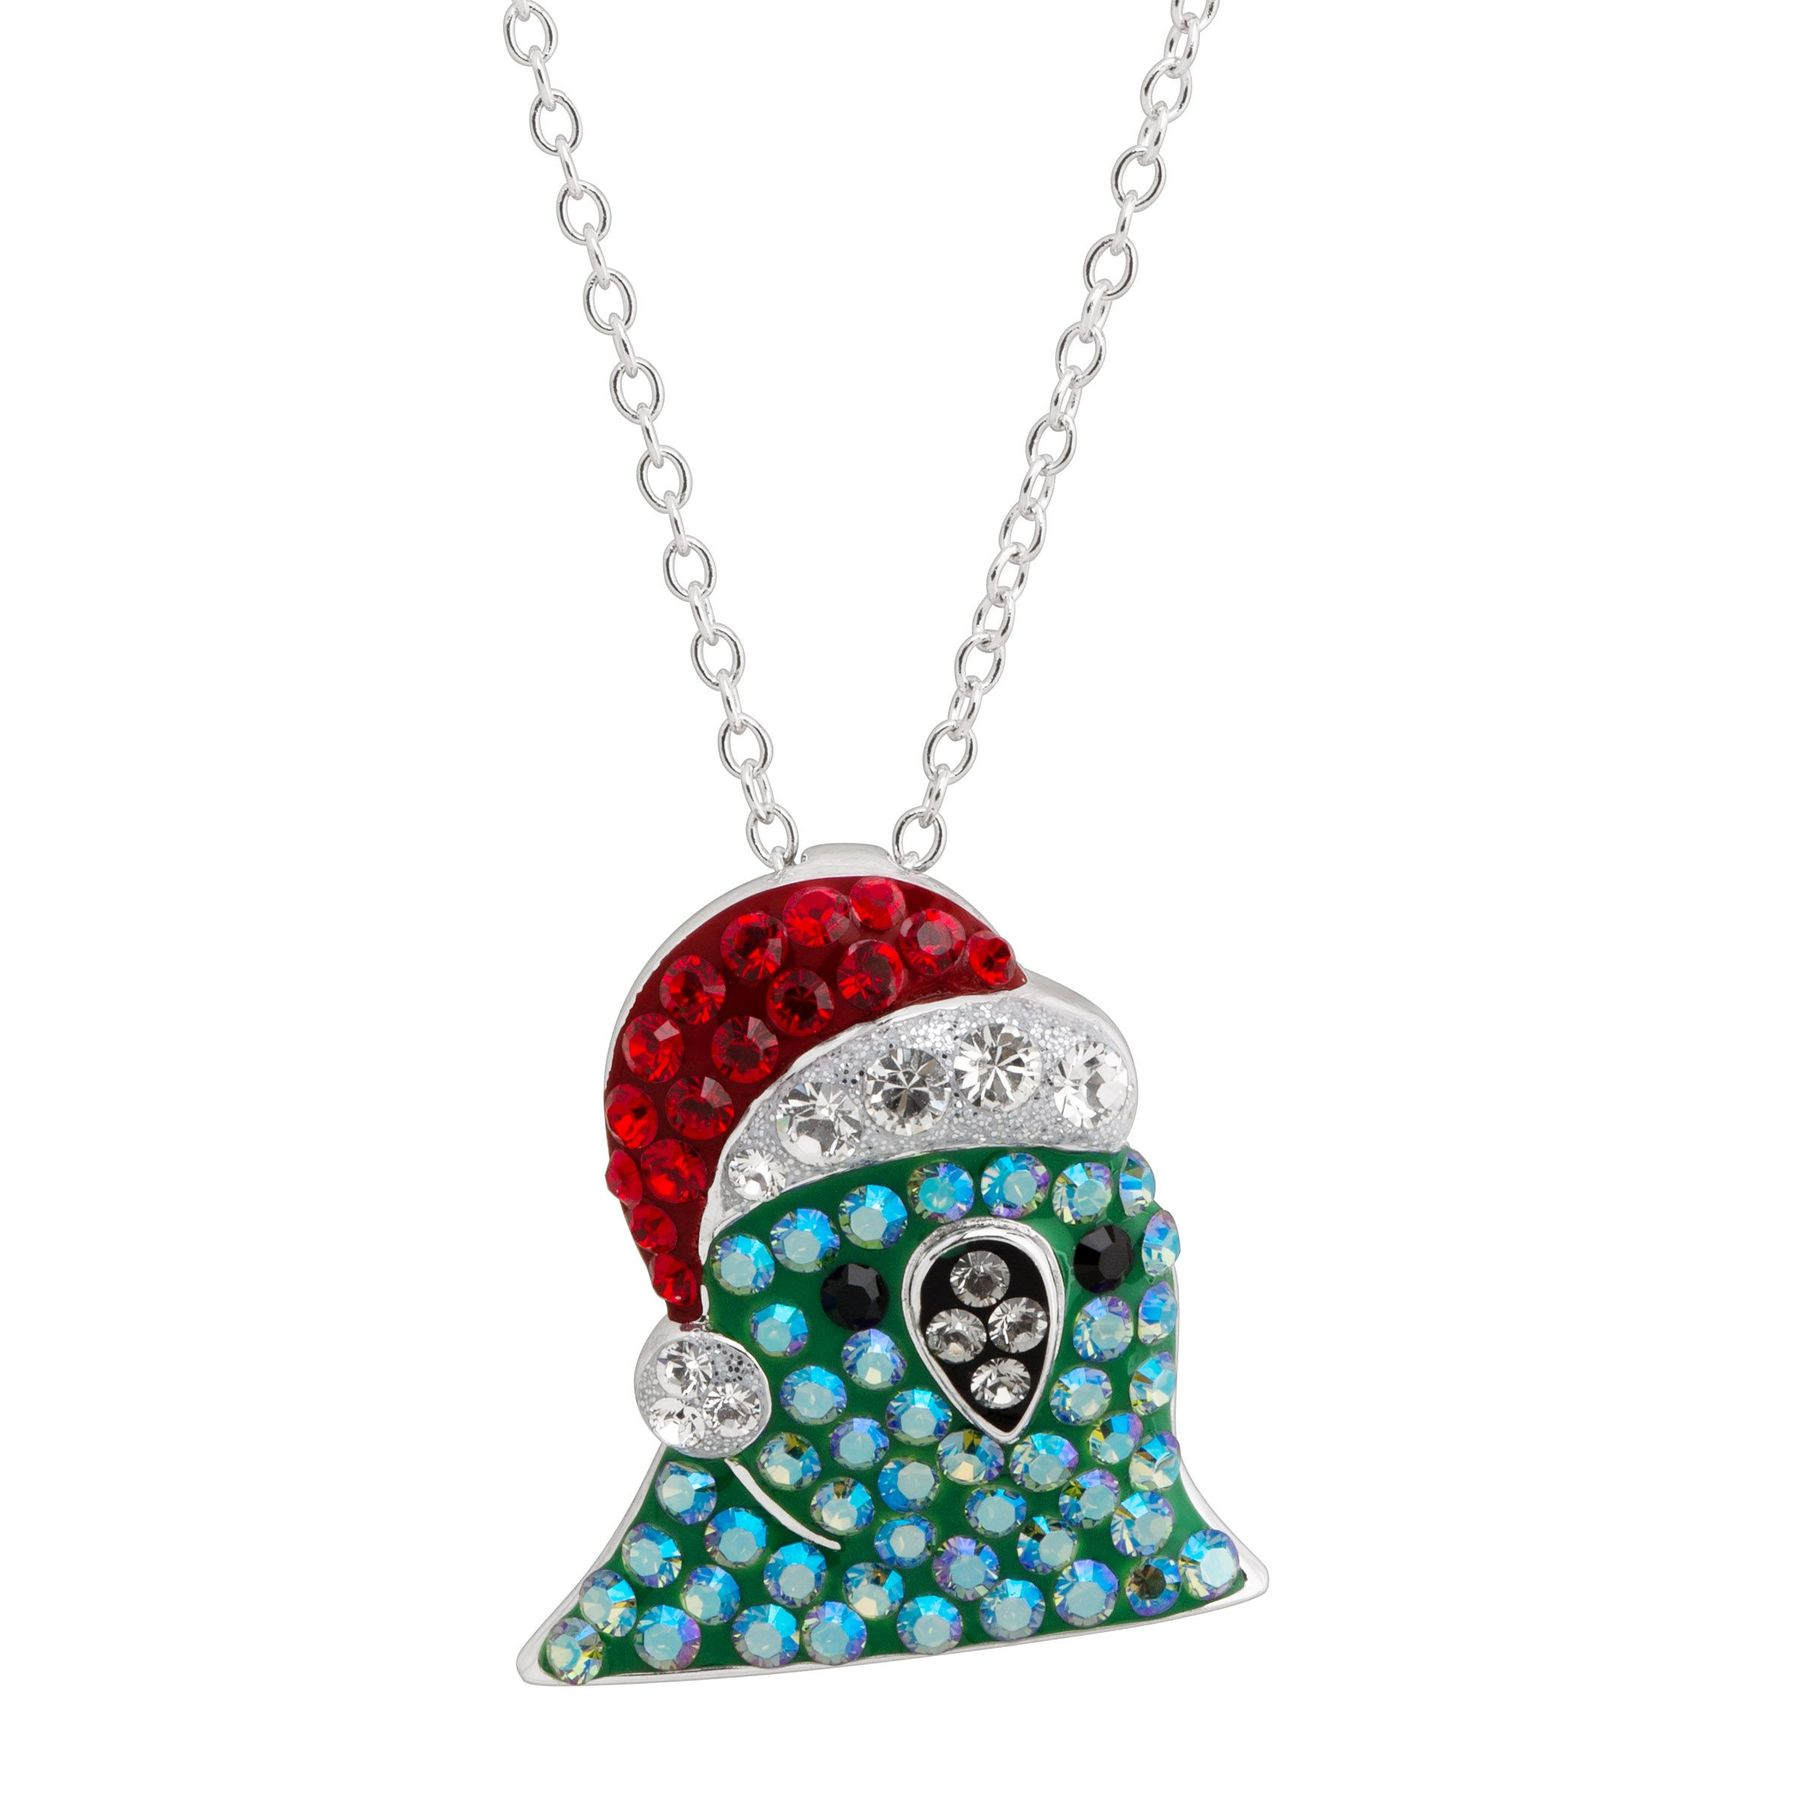 1c6a80609 Crystaluxe Santa Party Parrot Pendant with Swarovski Crystals in ...